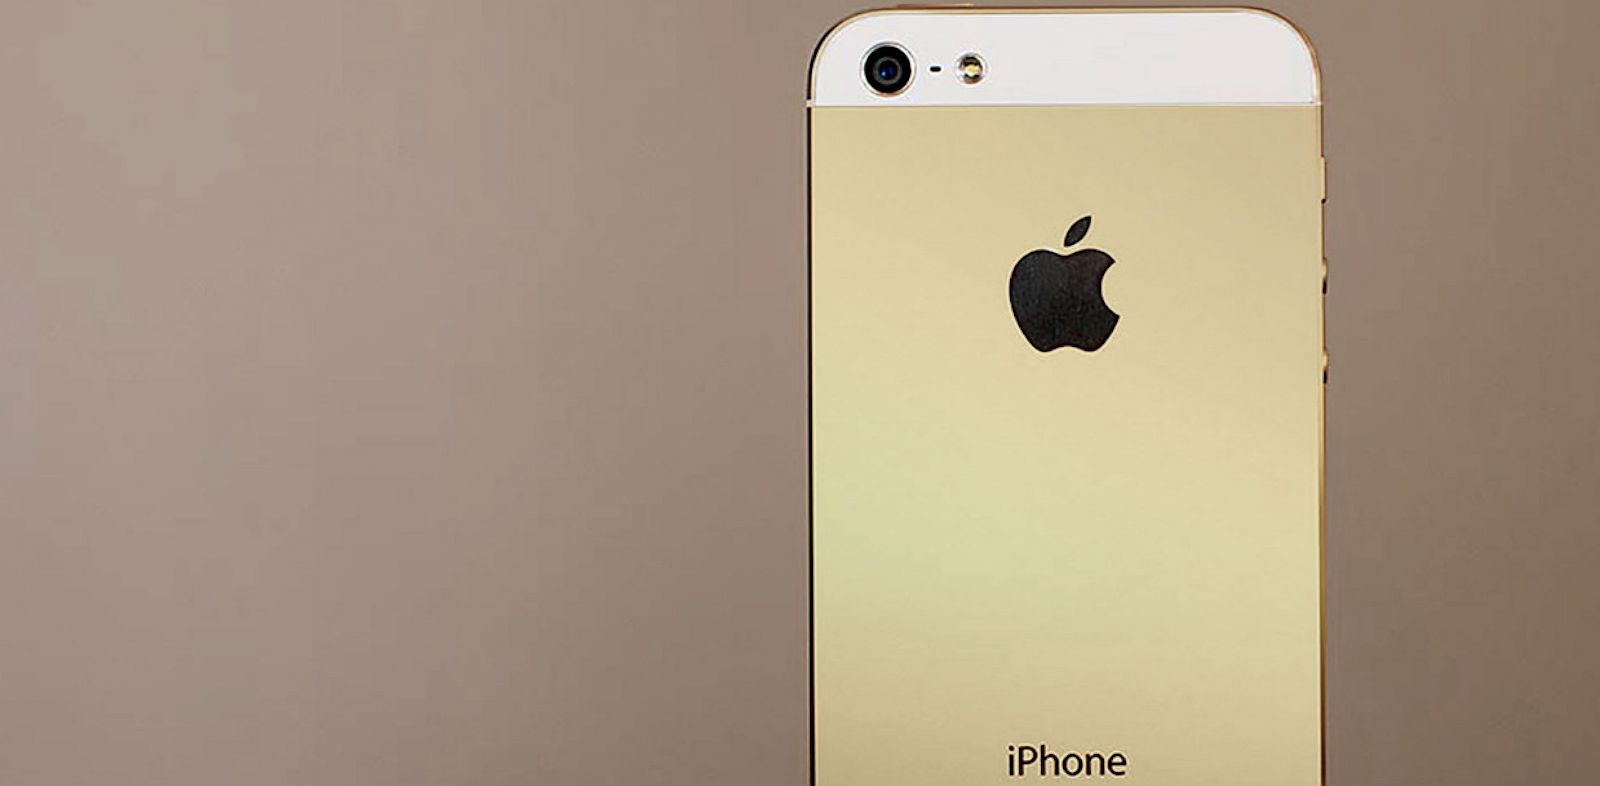 PHOTO: A mock-up of a gold colored iPhone by iMore.com.